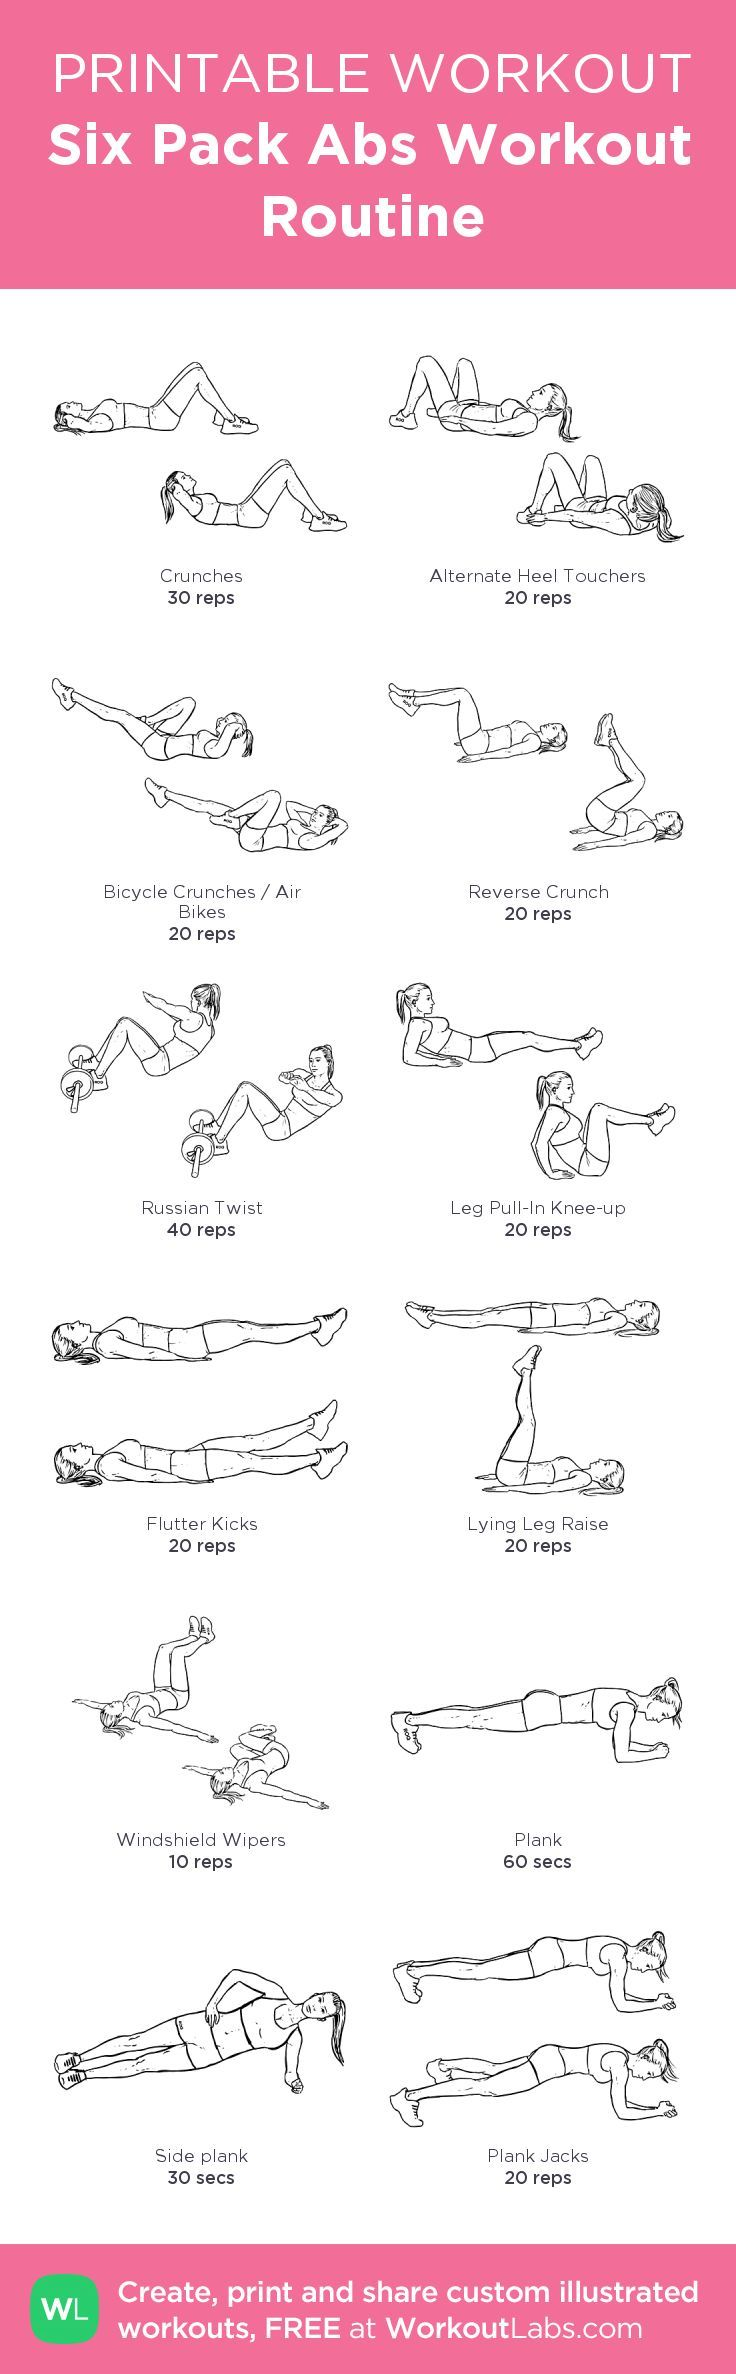 Six Pack Abs Workout Routine Custom Printable By WorkoutLabs